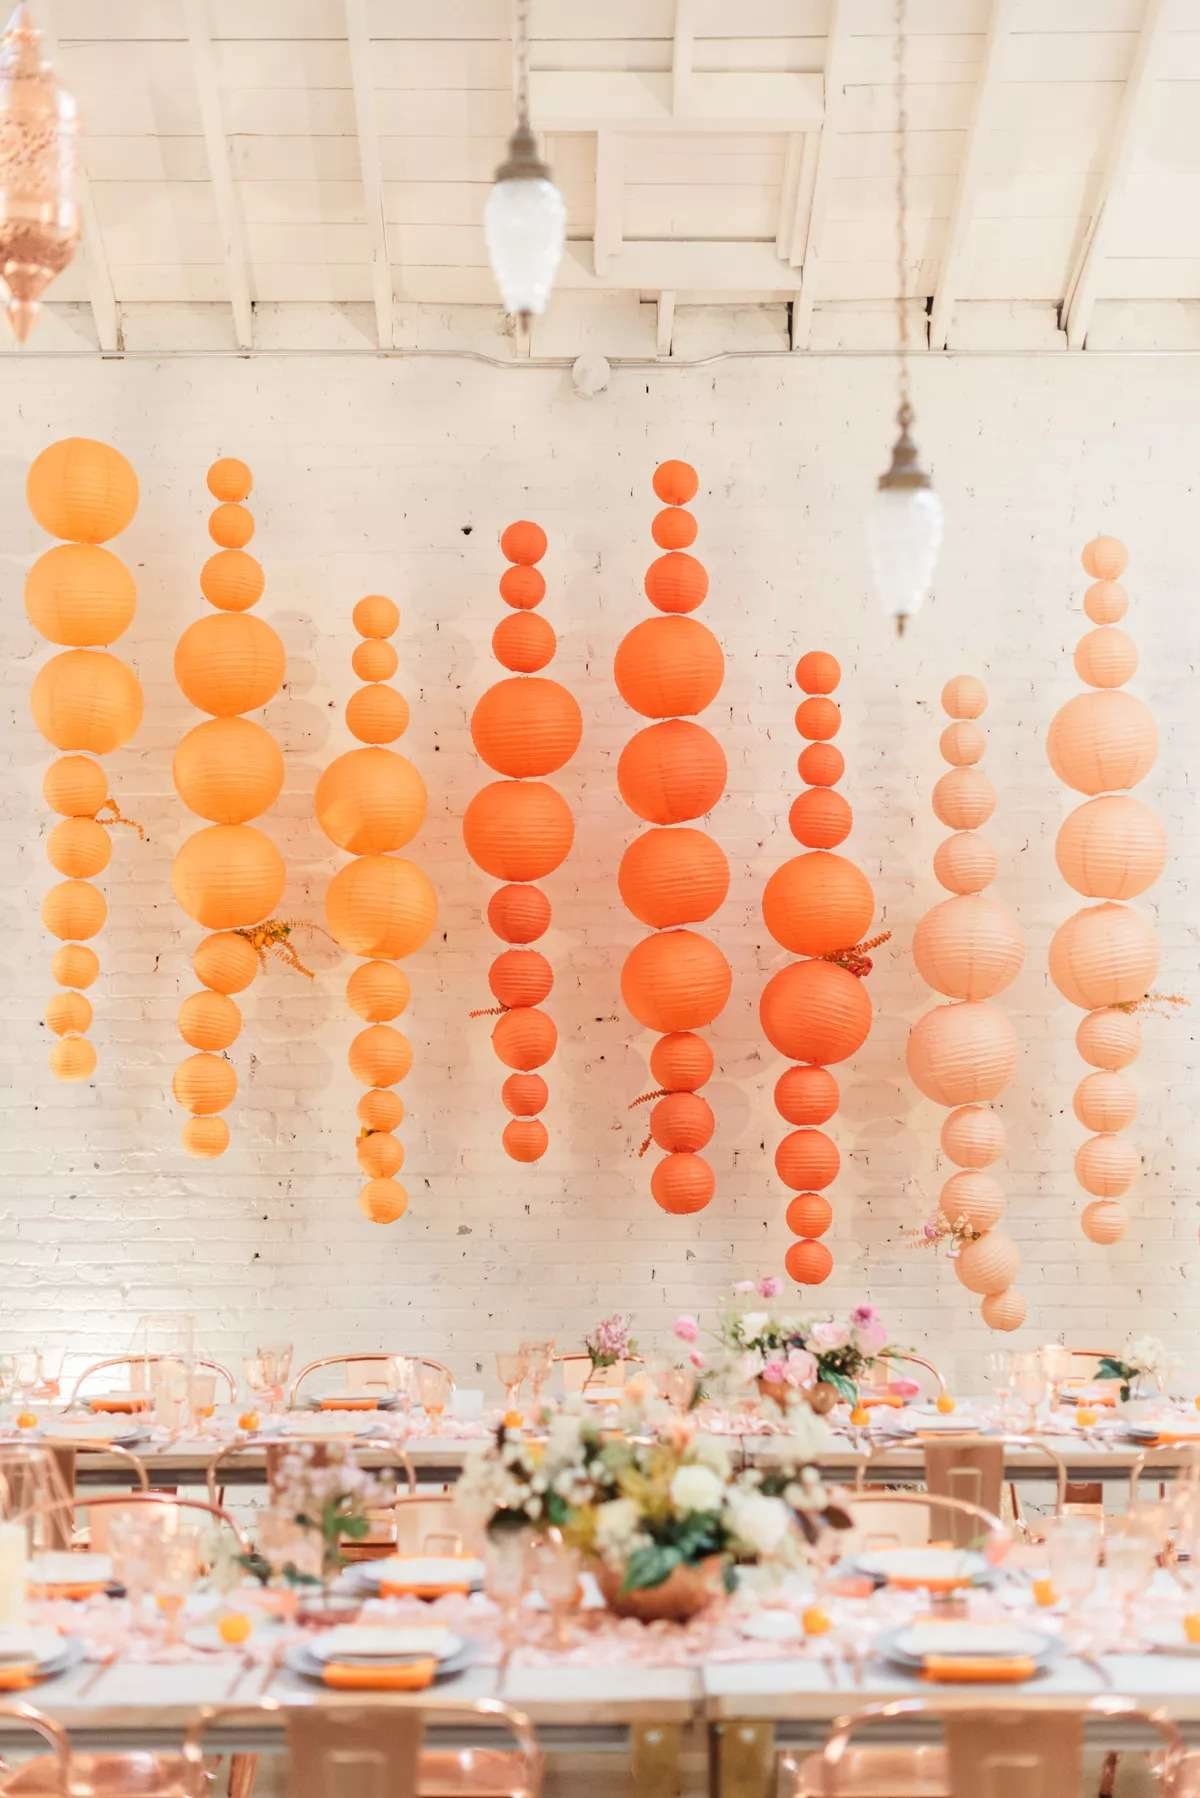 Orange ombre balloon garlands hanging on a wall